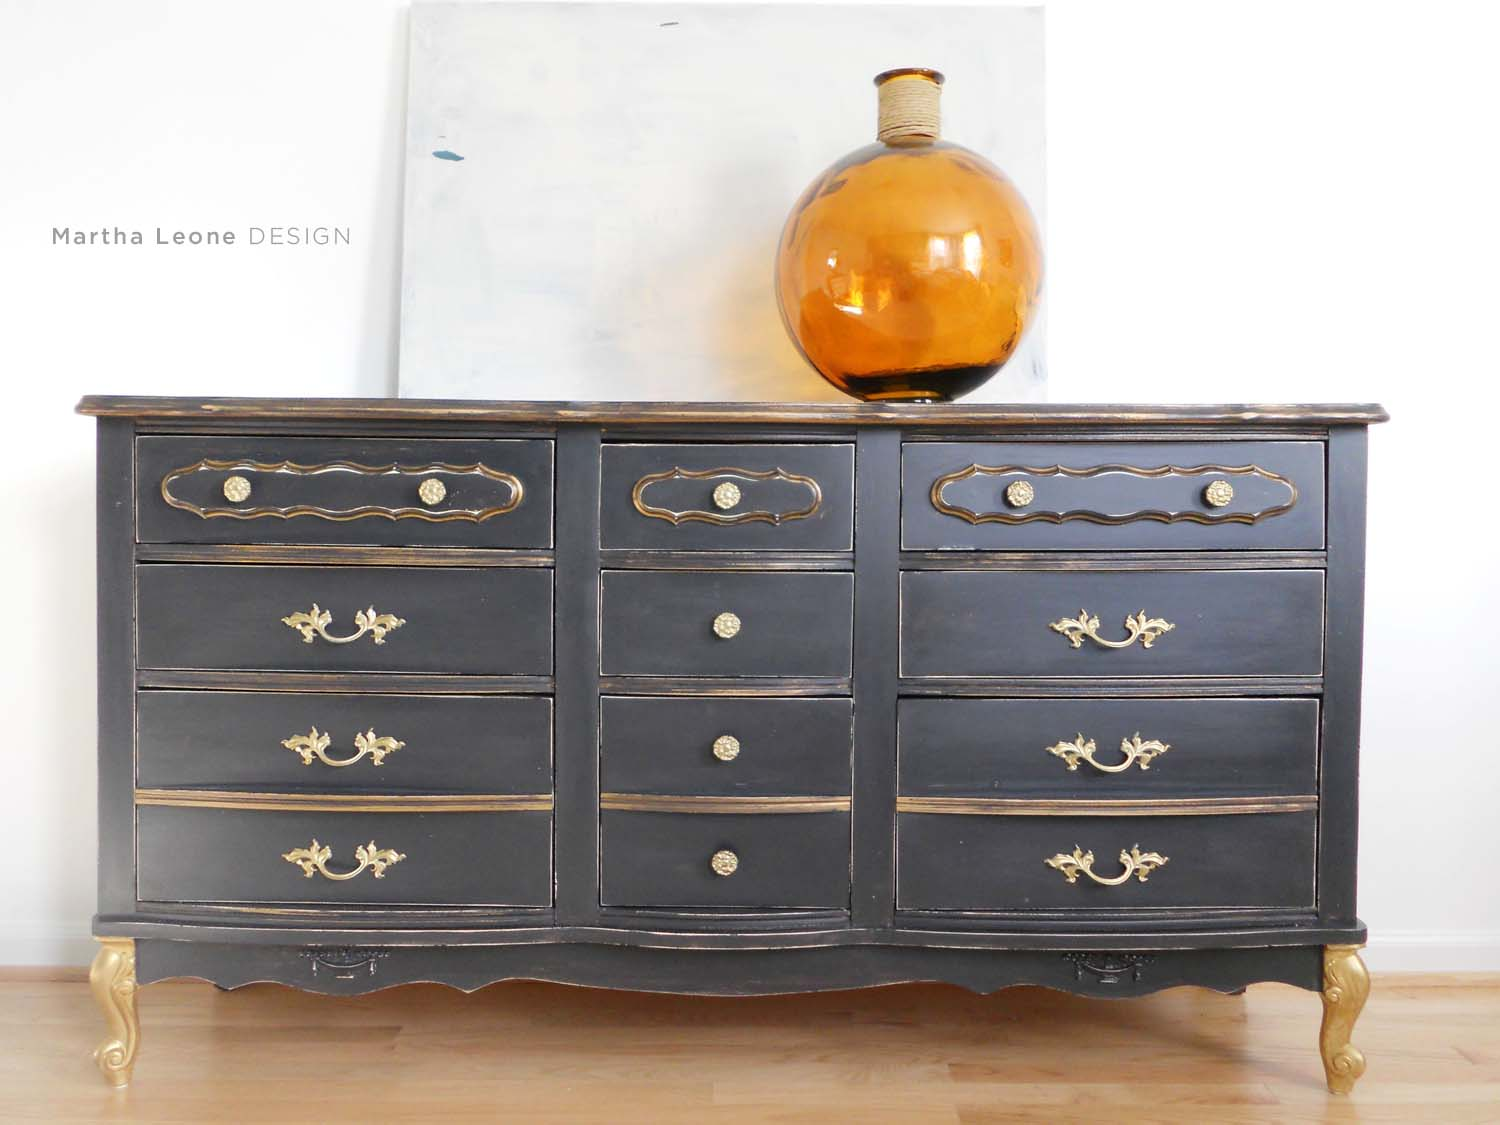 Black French Dresser8 MarthaLeoneDesign